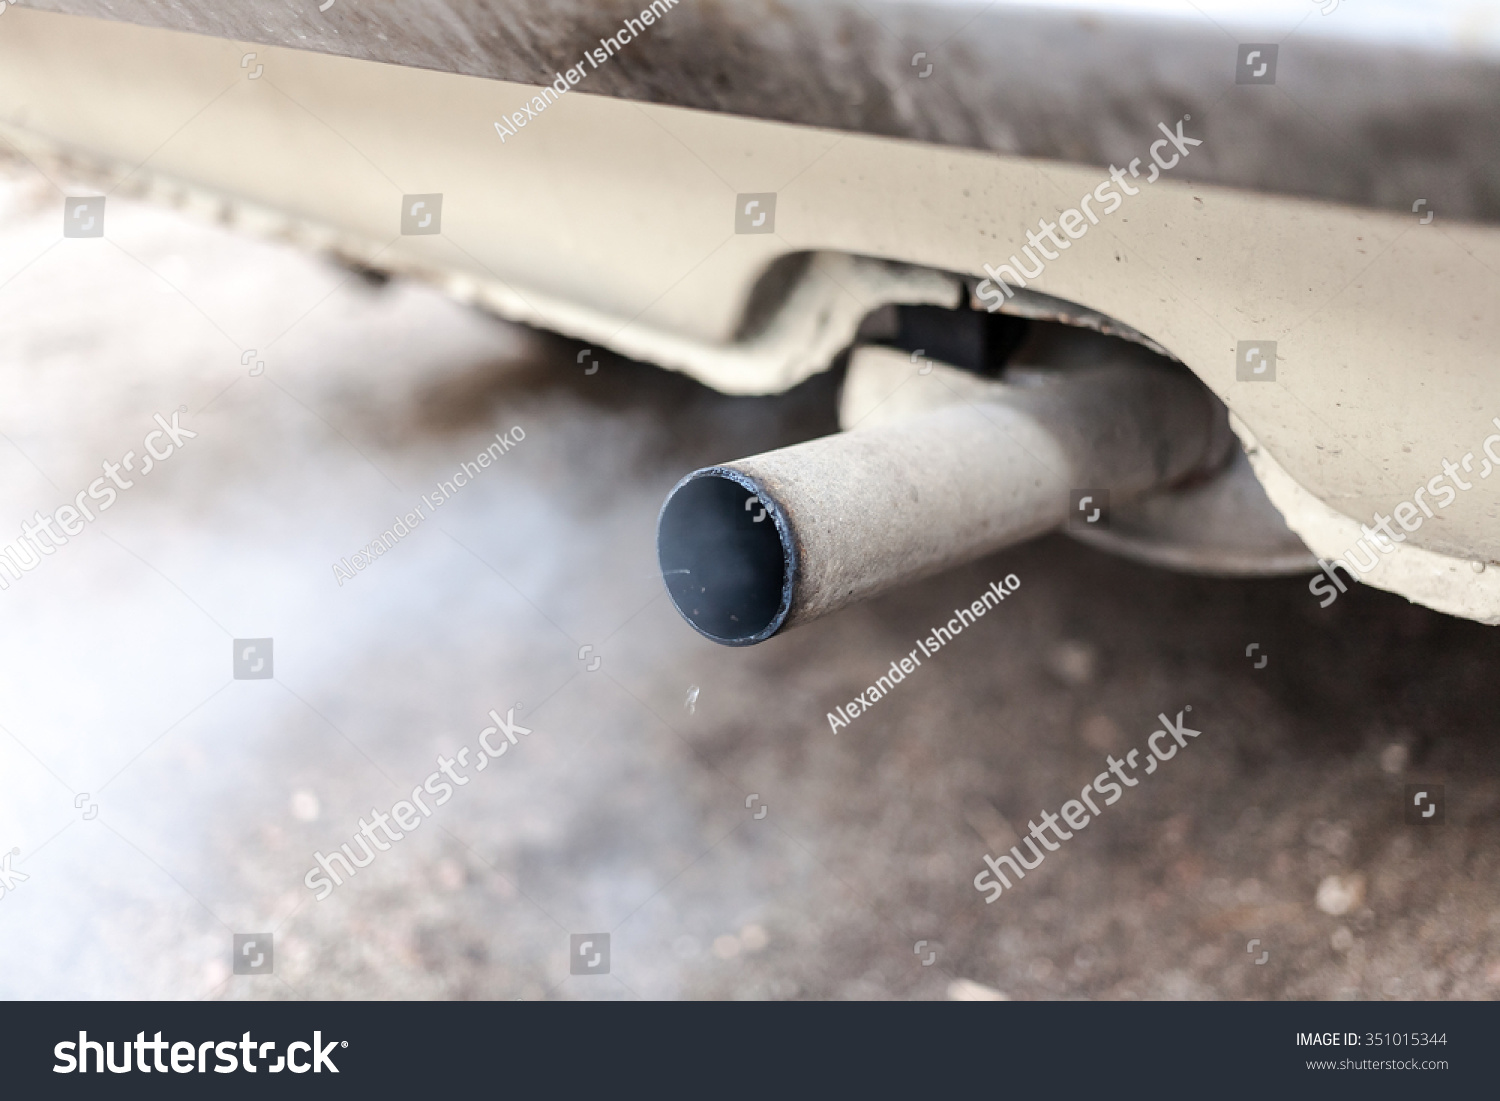 Exhaust Coming Out Of A Car ~ Combustion fumes coming out car exhaust stock photo